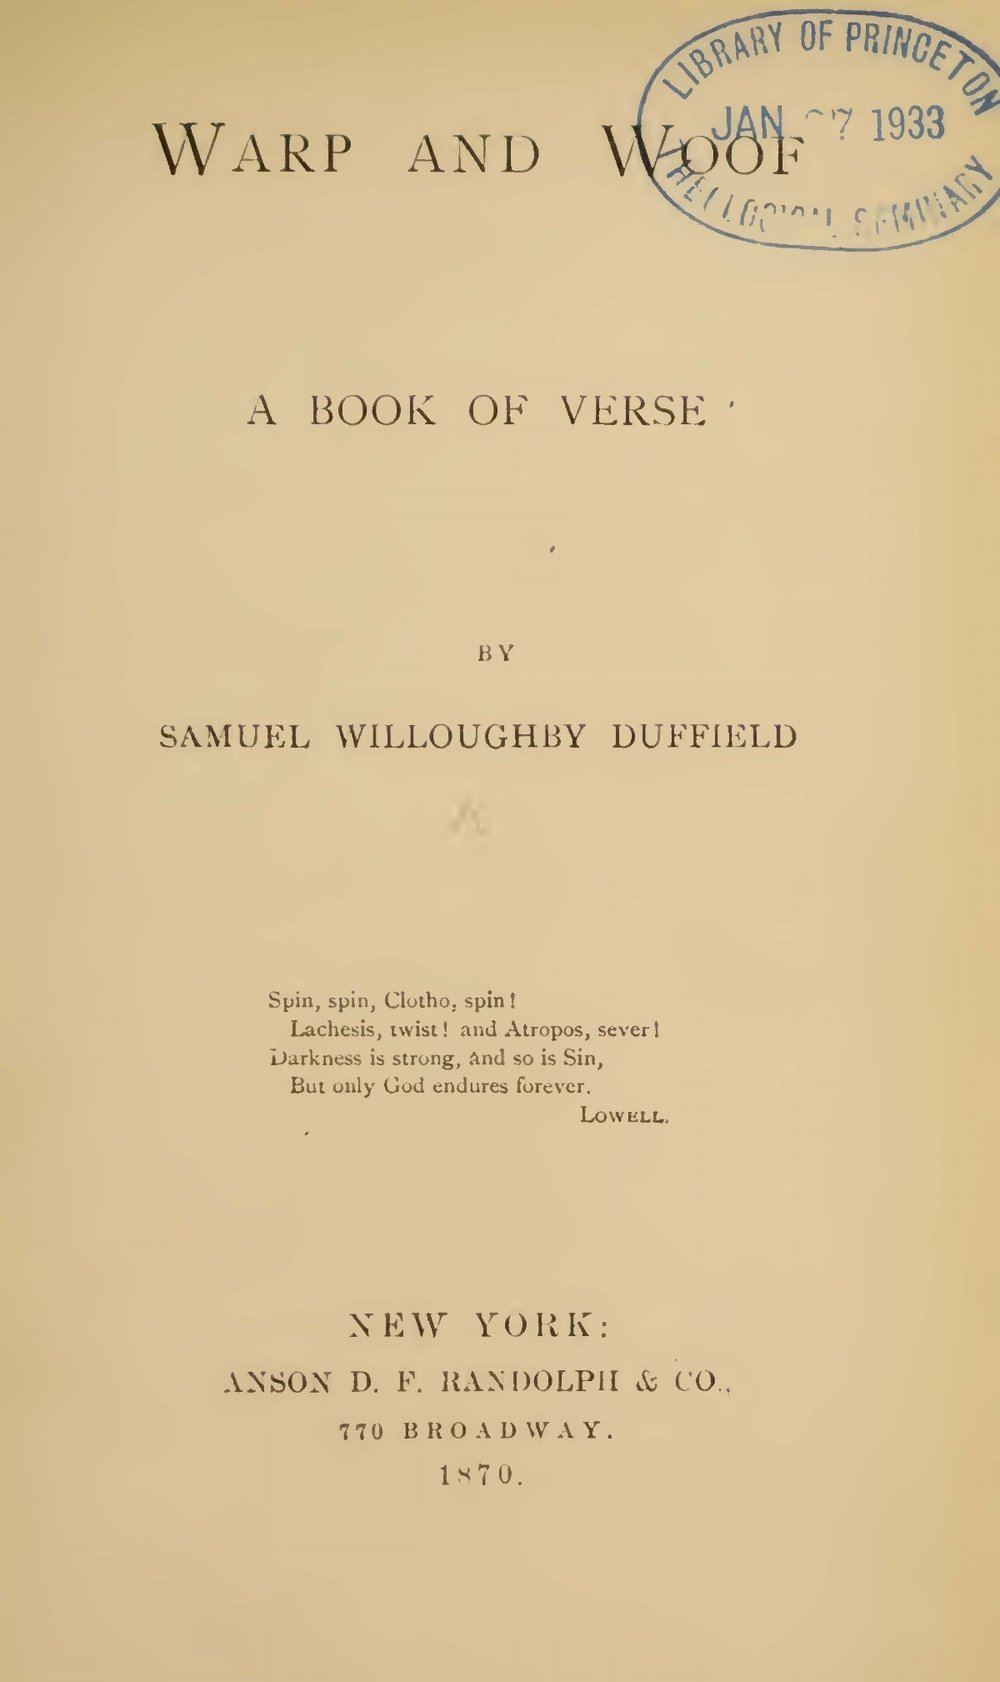 Duffield, Samuel Willoughby, Warp and Woof A Book of Verse Title Page.jpg